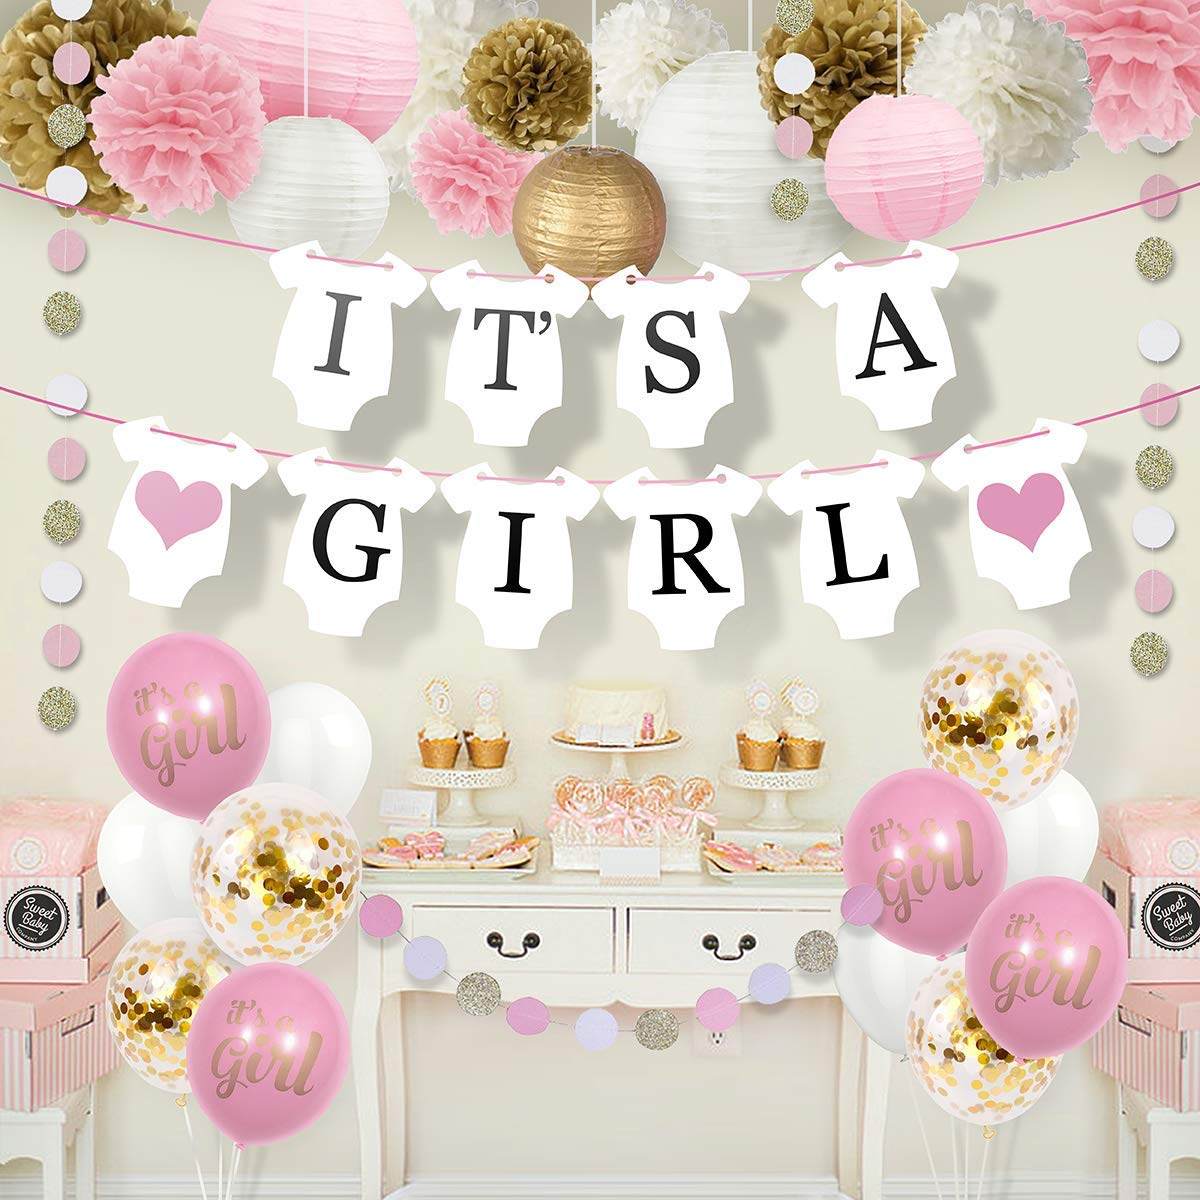 Sweet Baby Co. Baby Shower Decorations For Girl With It's A Girl Banner,  Paper Lanterns, Paper Flower Pom Poms, Confetti Balloons, Paper Garland ( Pink, ...